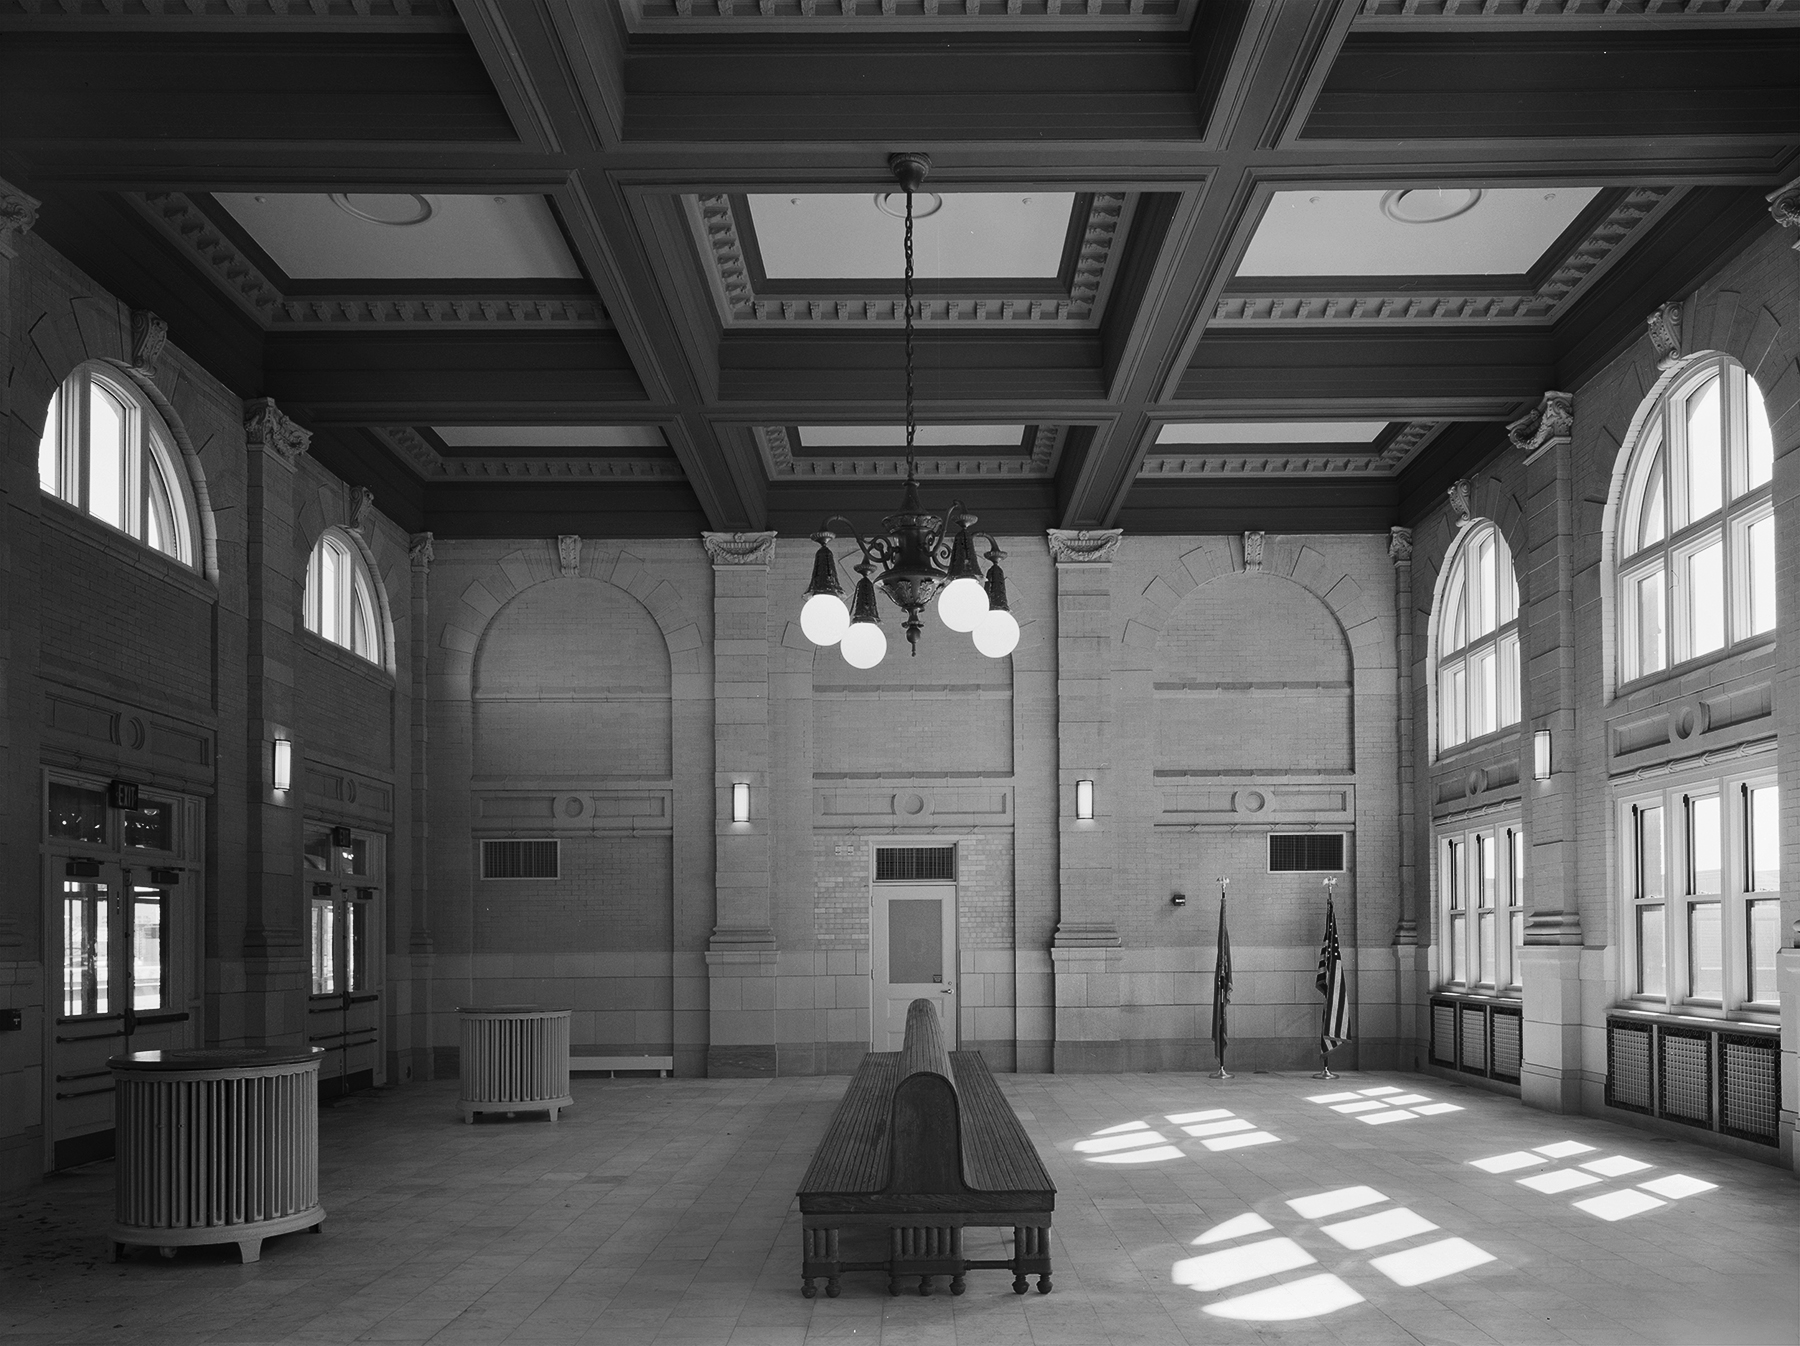 Northbound Waiting Room, Pennsylvania Station, Wilmington, Delaware.